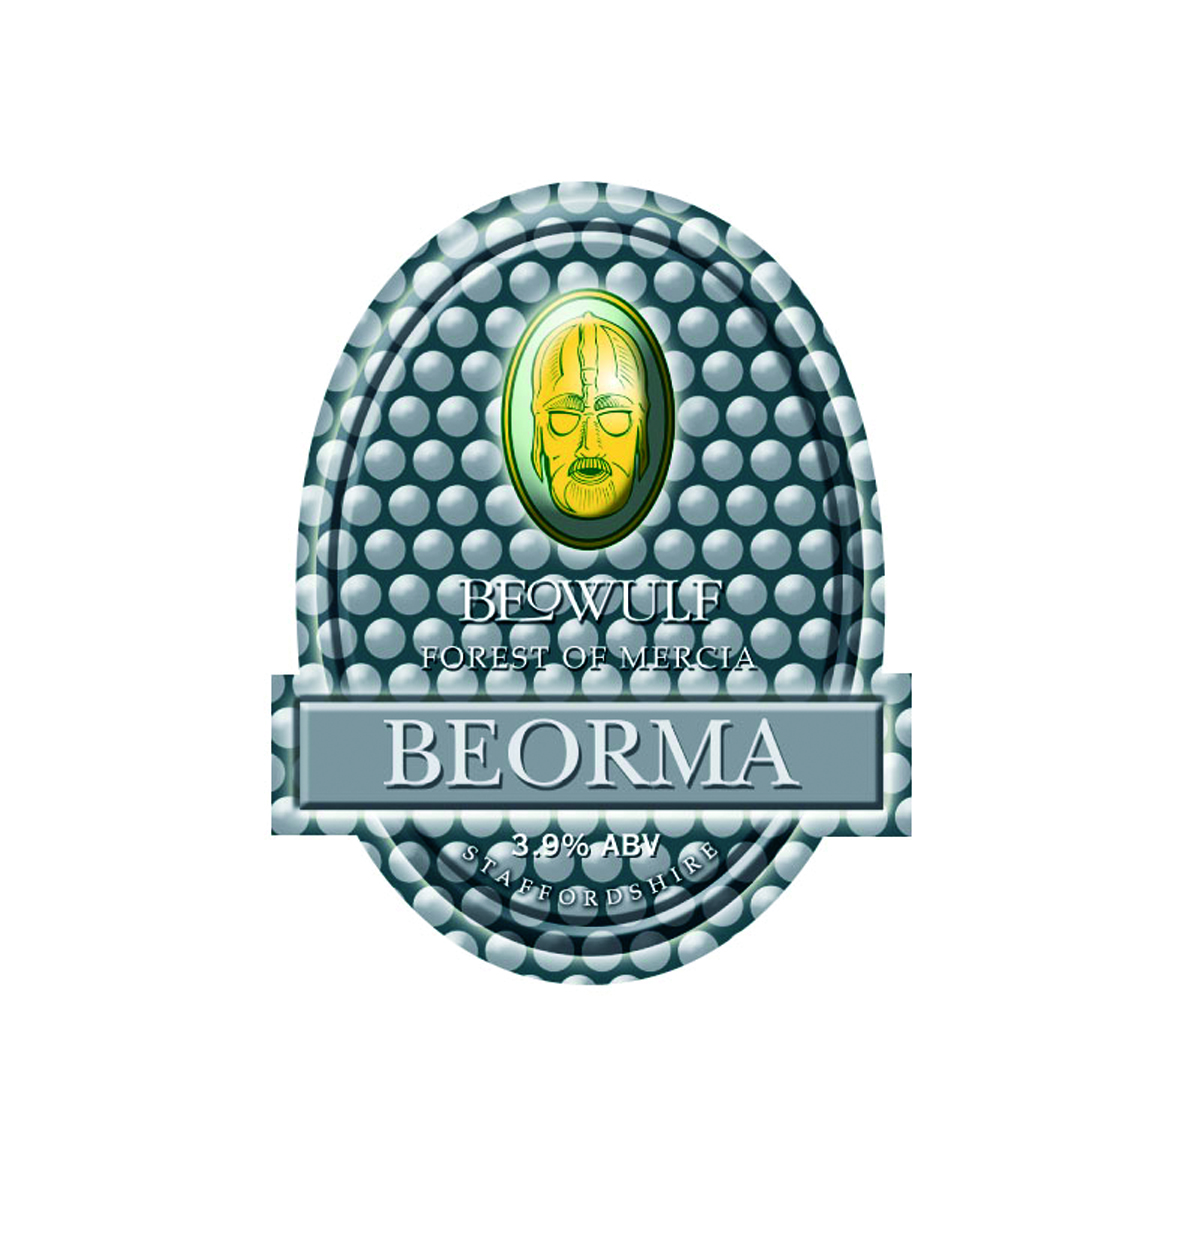 Beowulf Beorma 9 Gallons Pale  3.9%